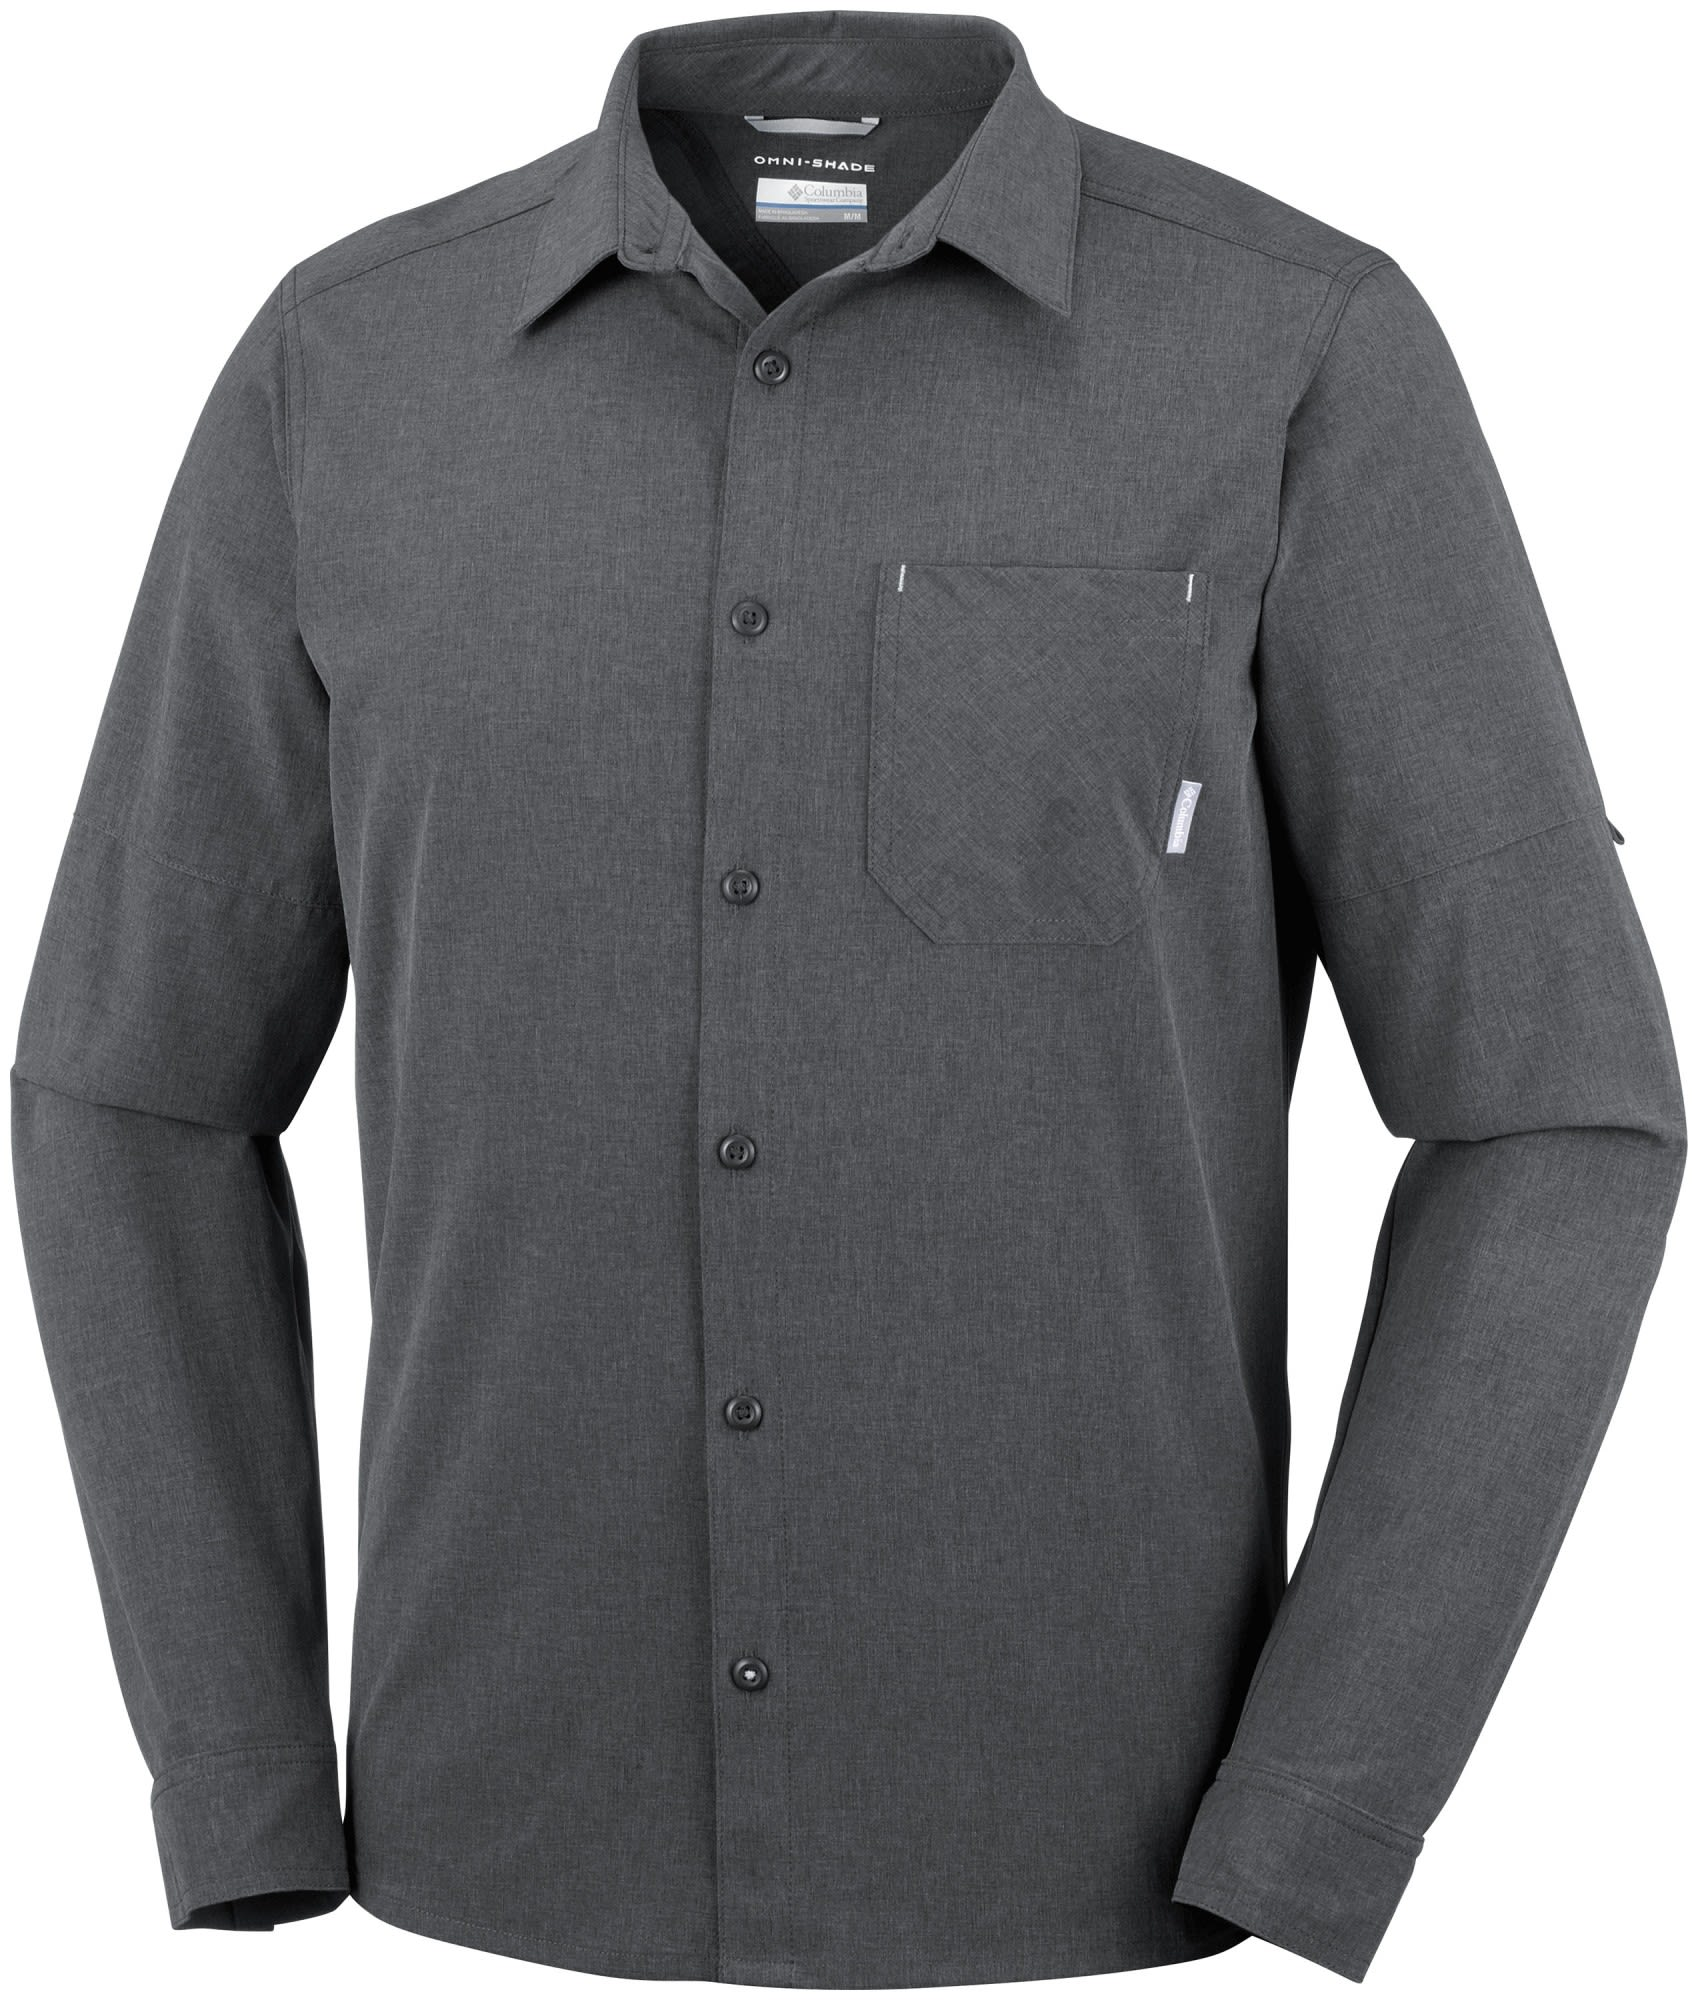 Columbia M Triple Canyon Long Sleeve Shirt | Größe S,M,L,XL,XXL | Herren Langa